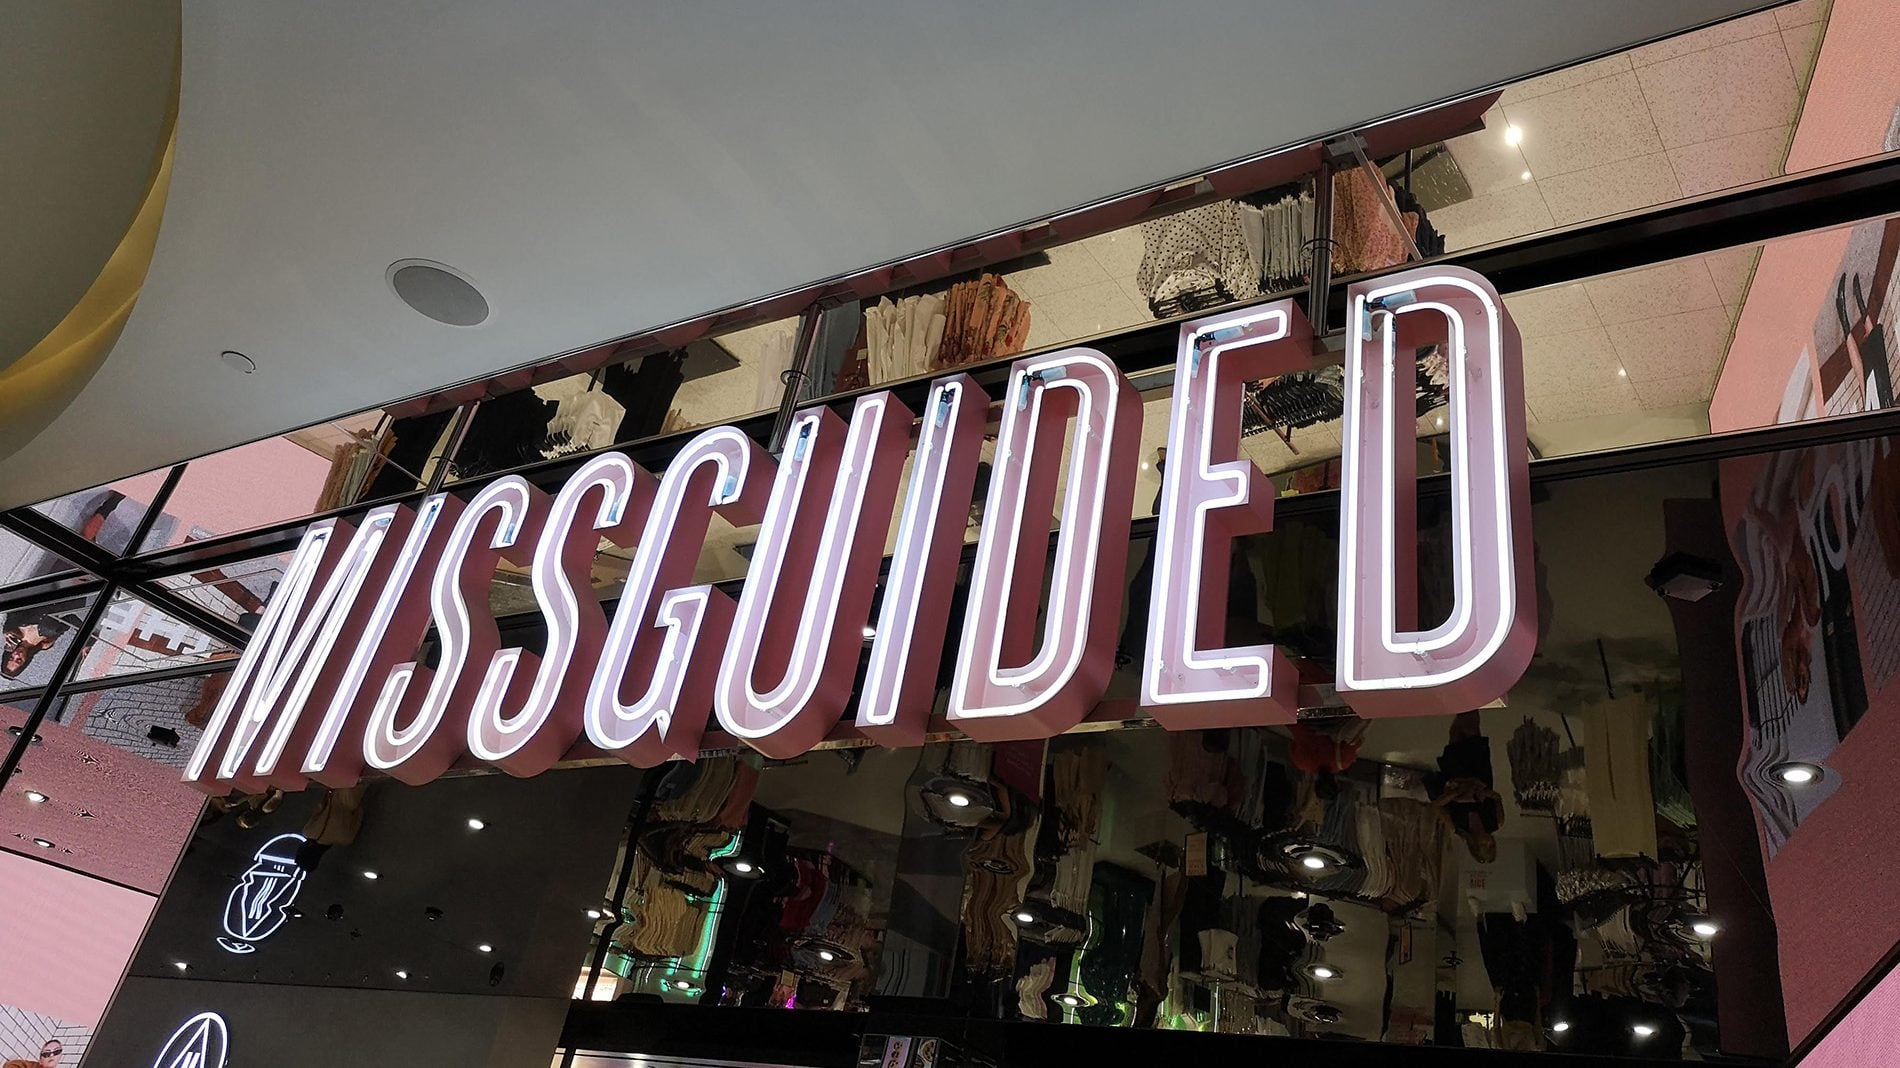 Missguided store front illuminated logo and neat finishings